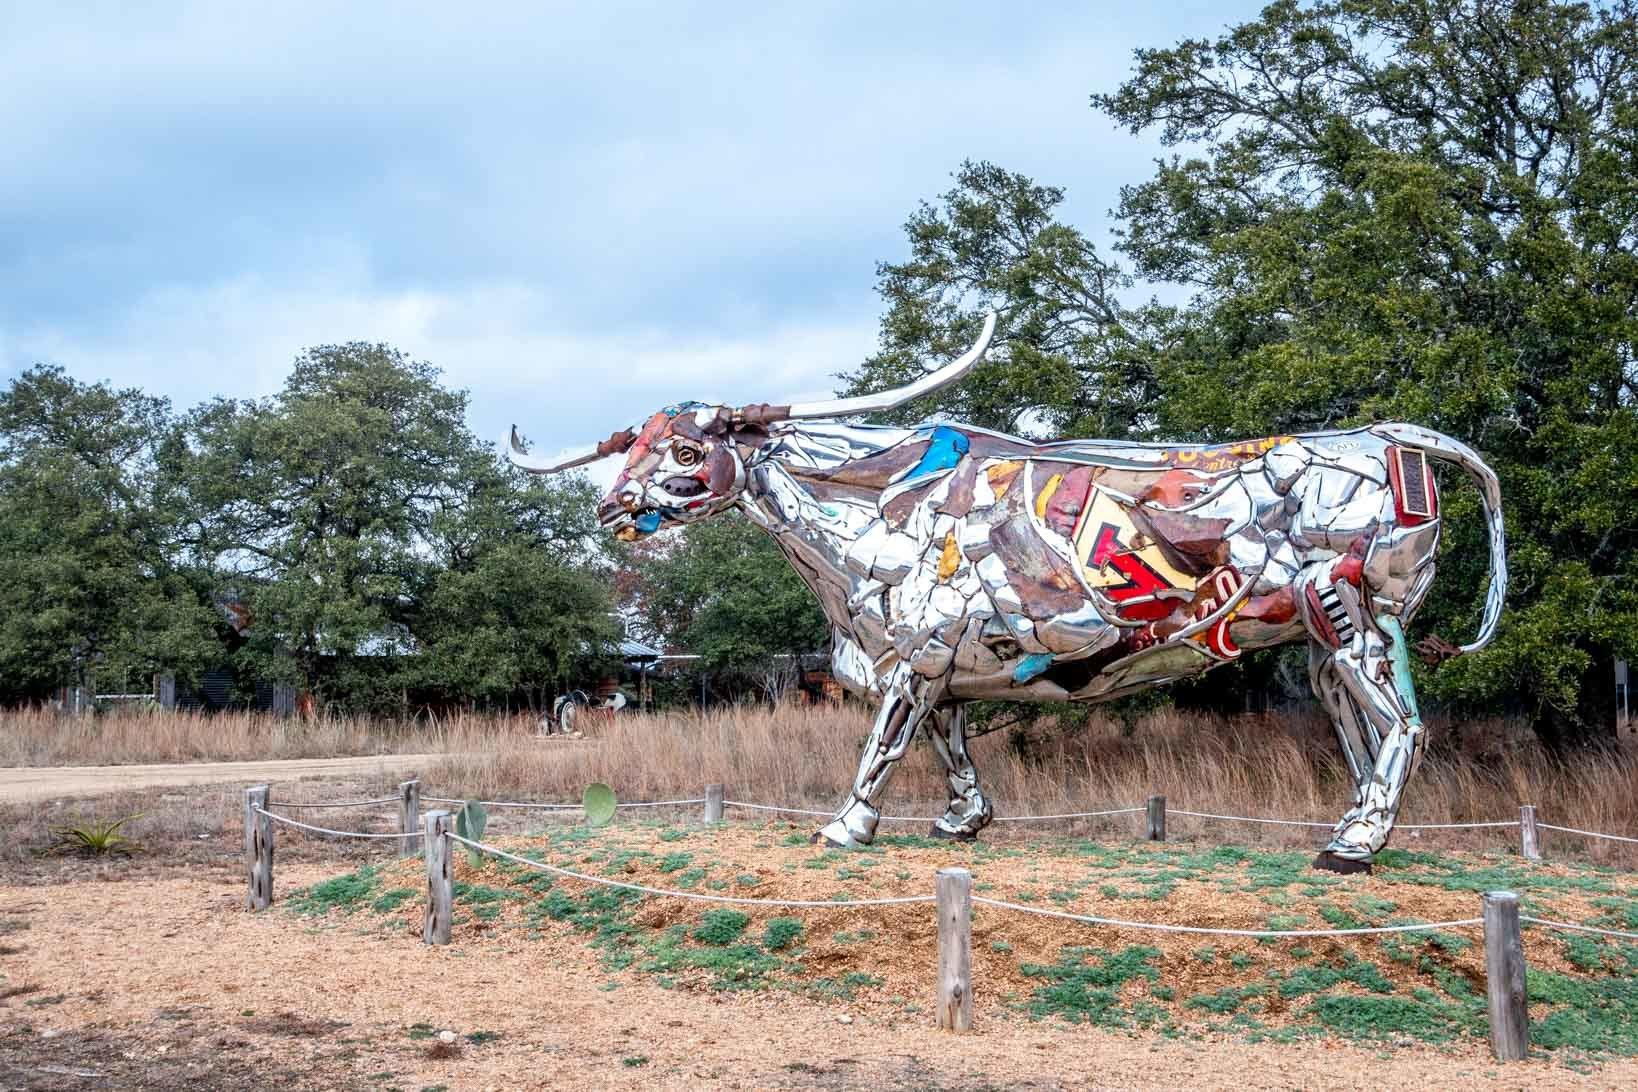 Giant bull sculpture made from automobile car bumpers